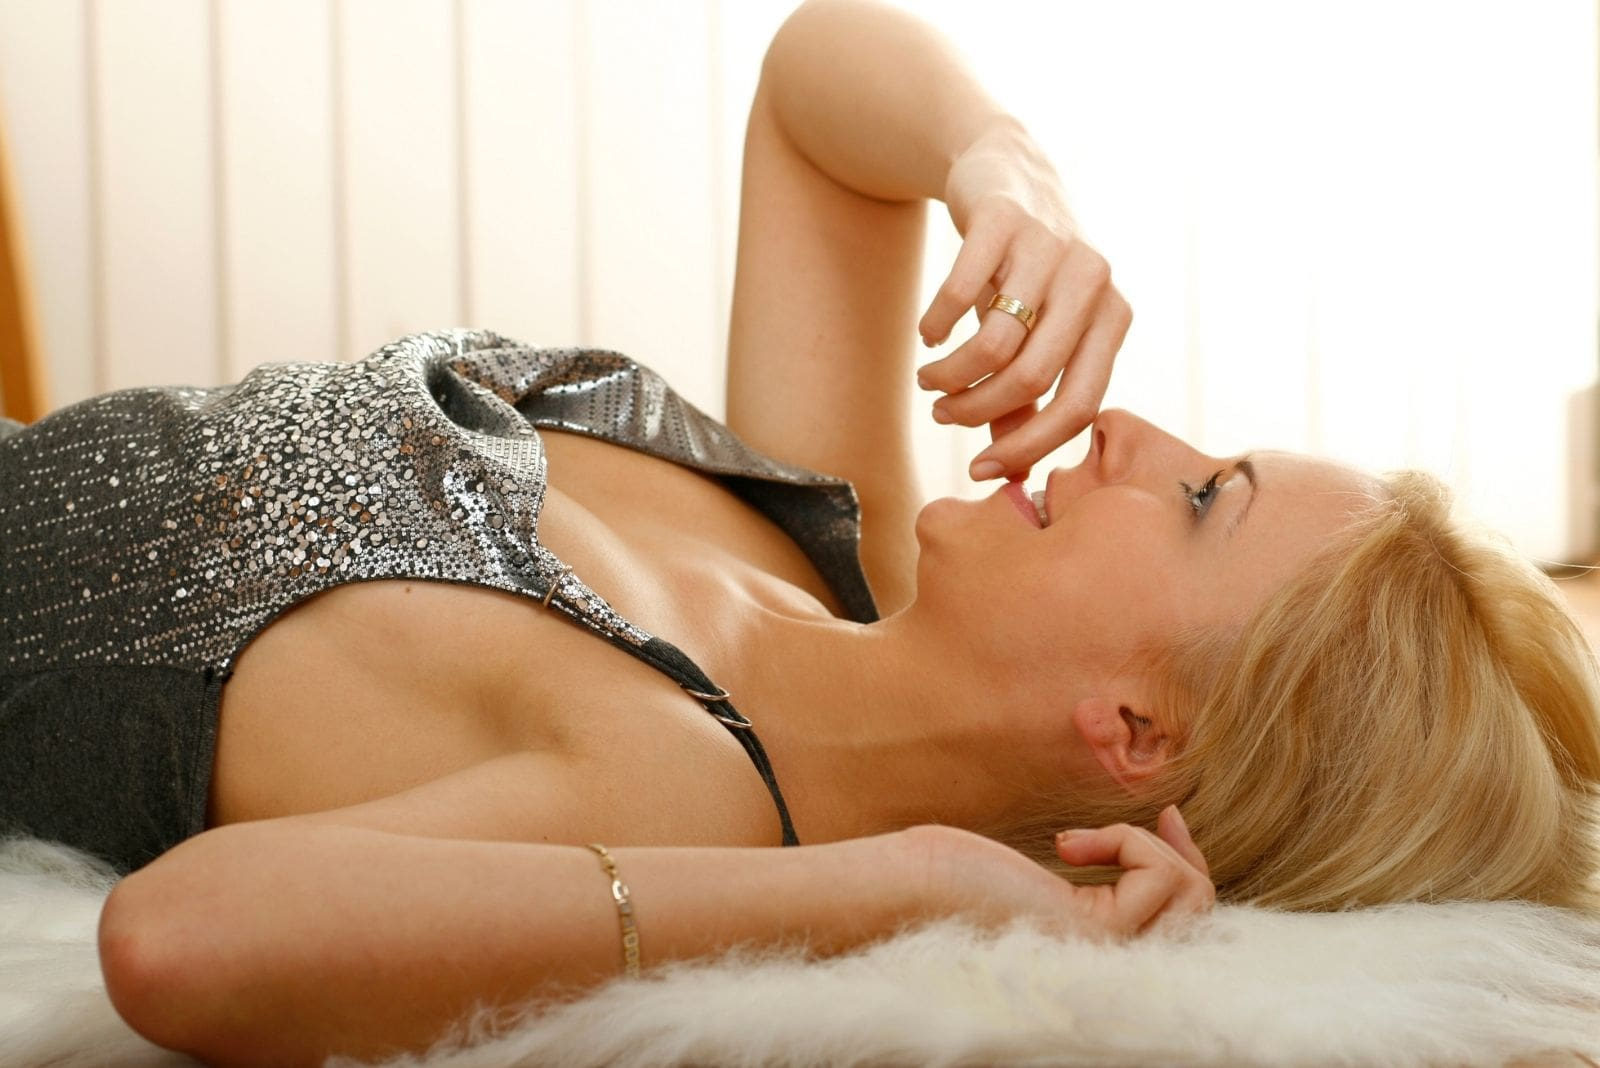 pensive woman lying down in bed wearing great dress and biting her nail